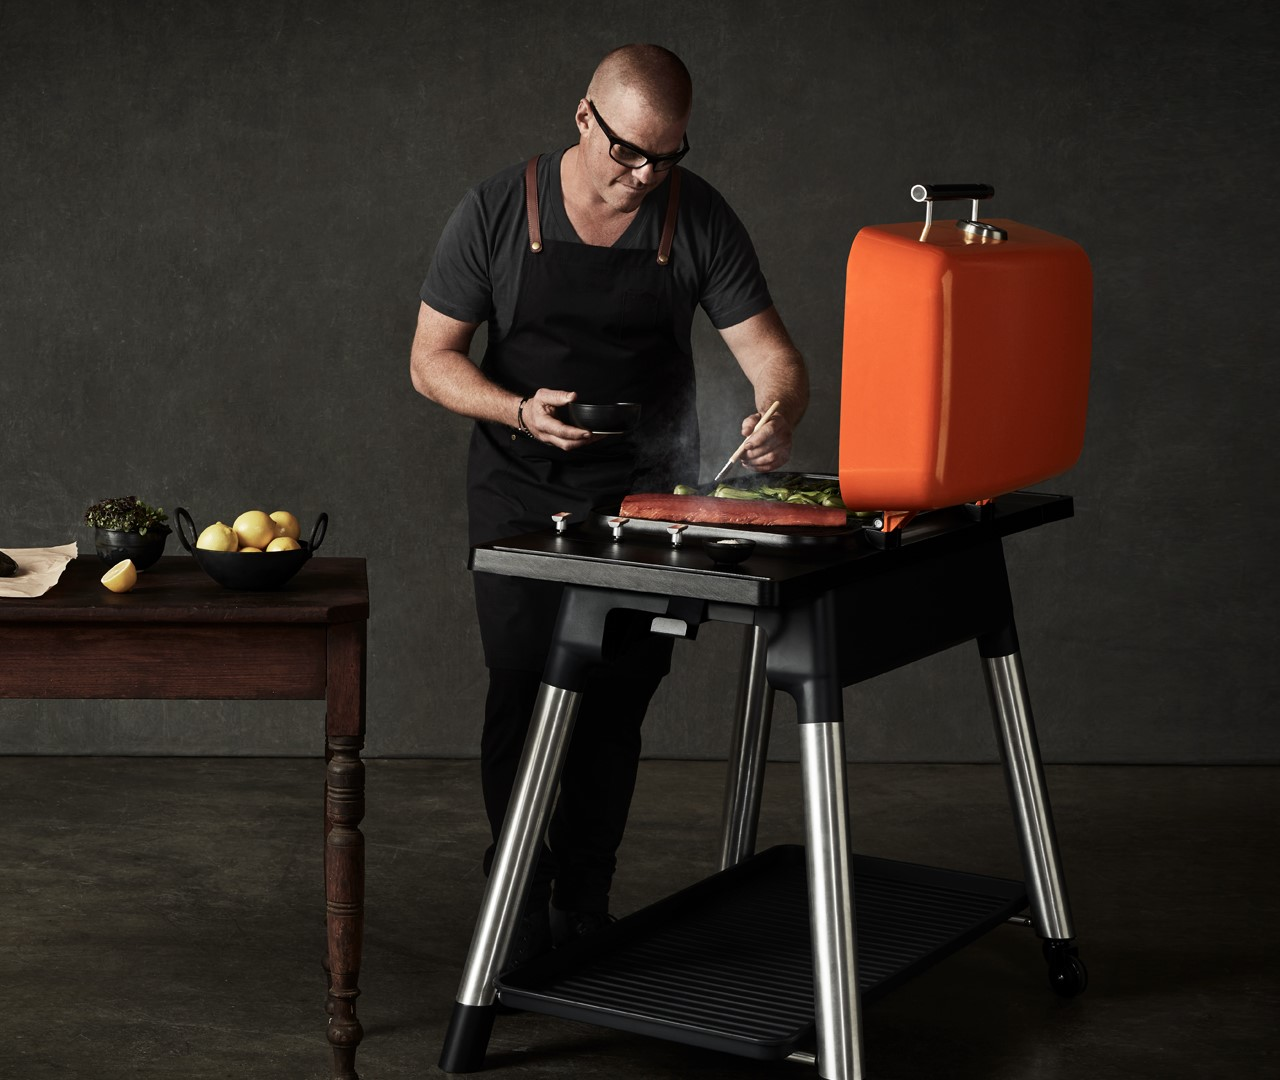 Everdure by heston blumenthal bbq's